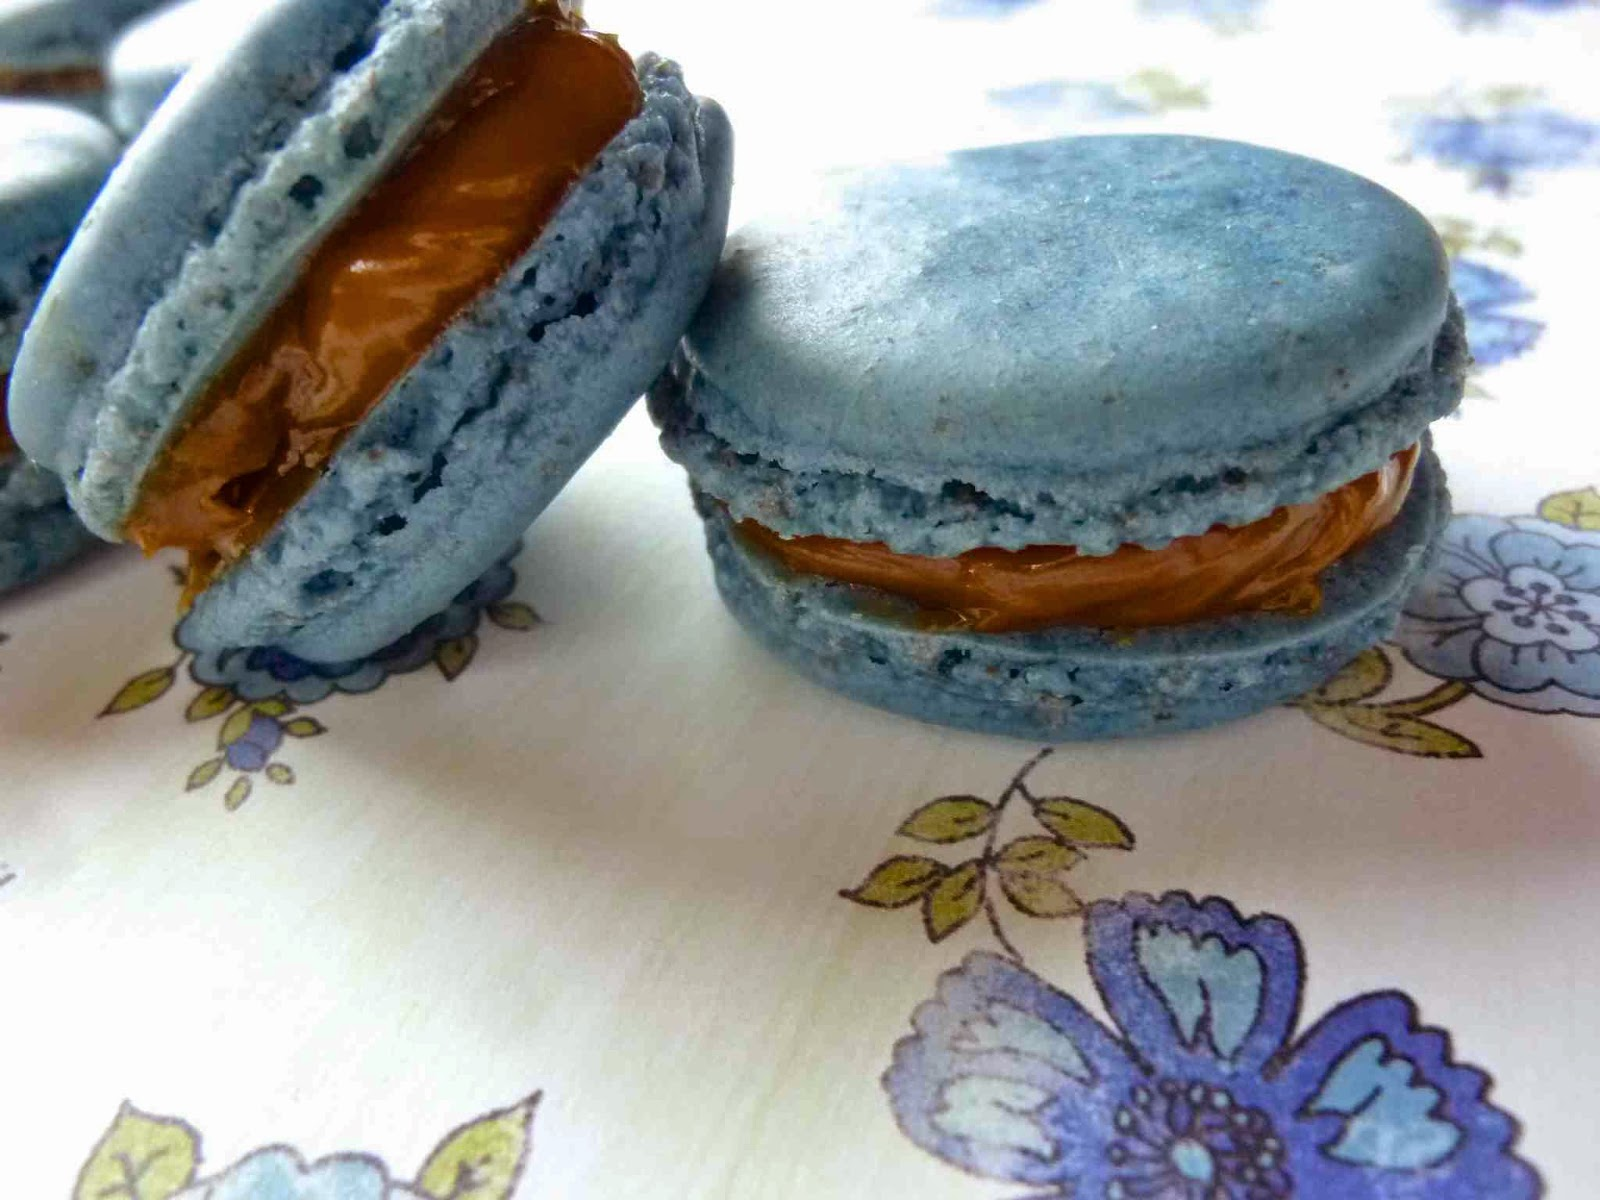 ... Macaron Monday: Blueberry French Macarons with Dulce de Leche Filling